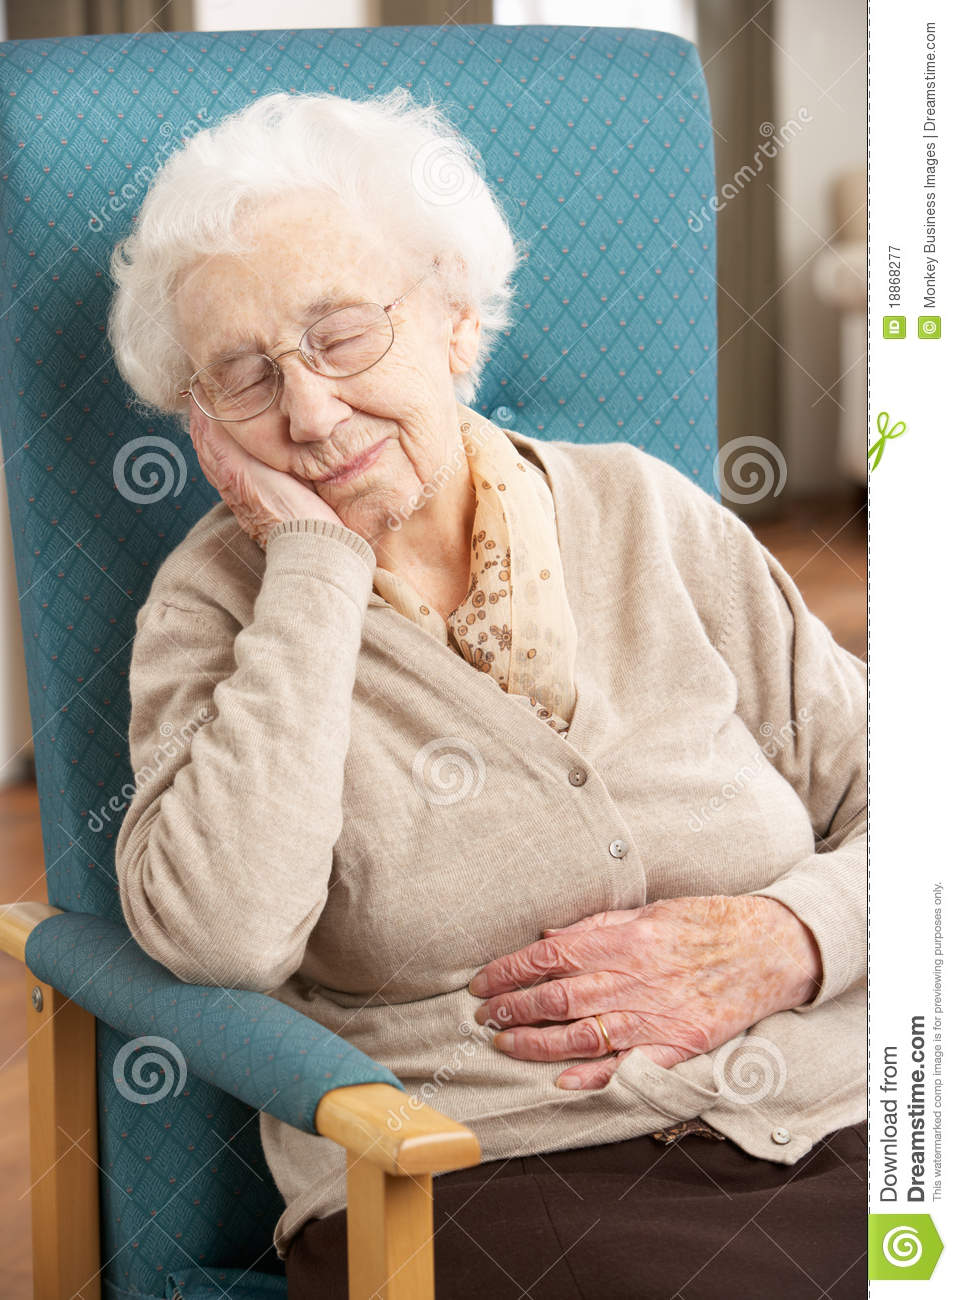 Senior Woman Resting In Chair Stock Image